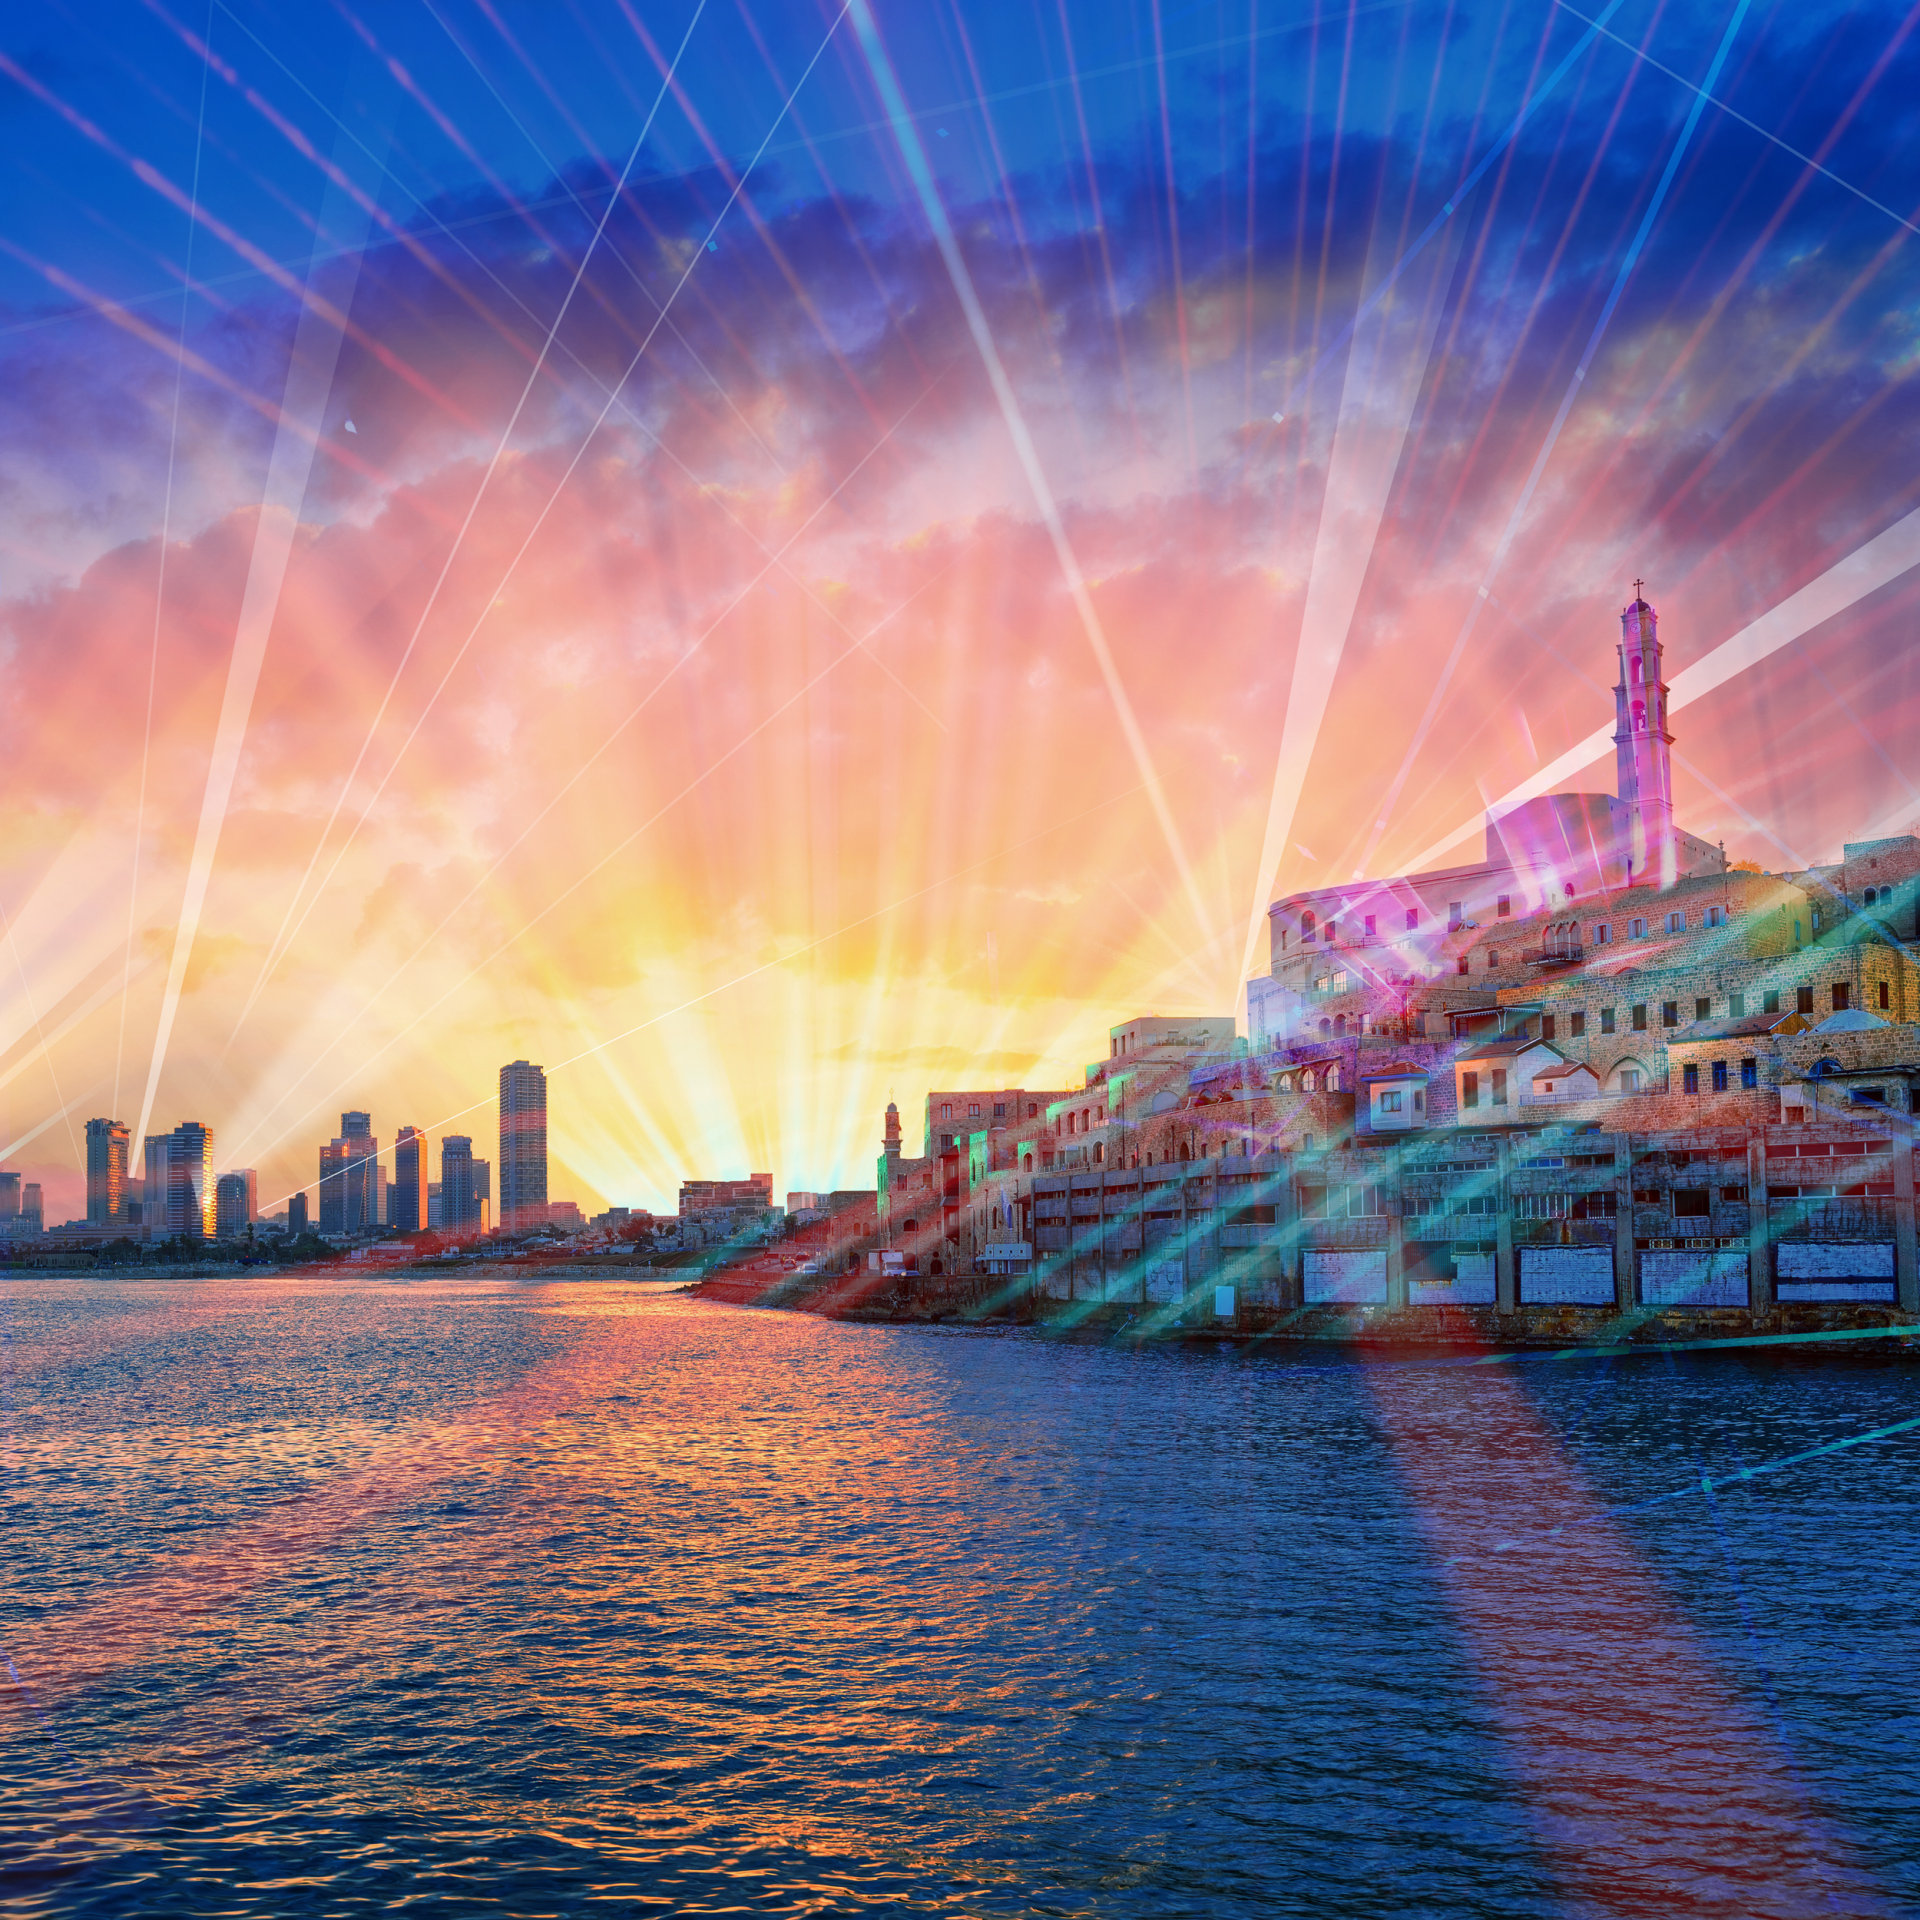 <strong>#FeelTheVibe</strong><br>OSRAM is lighting up the 2019 Eurovision Song Contest in Tel Aviv